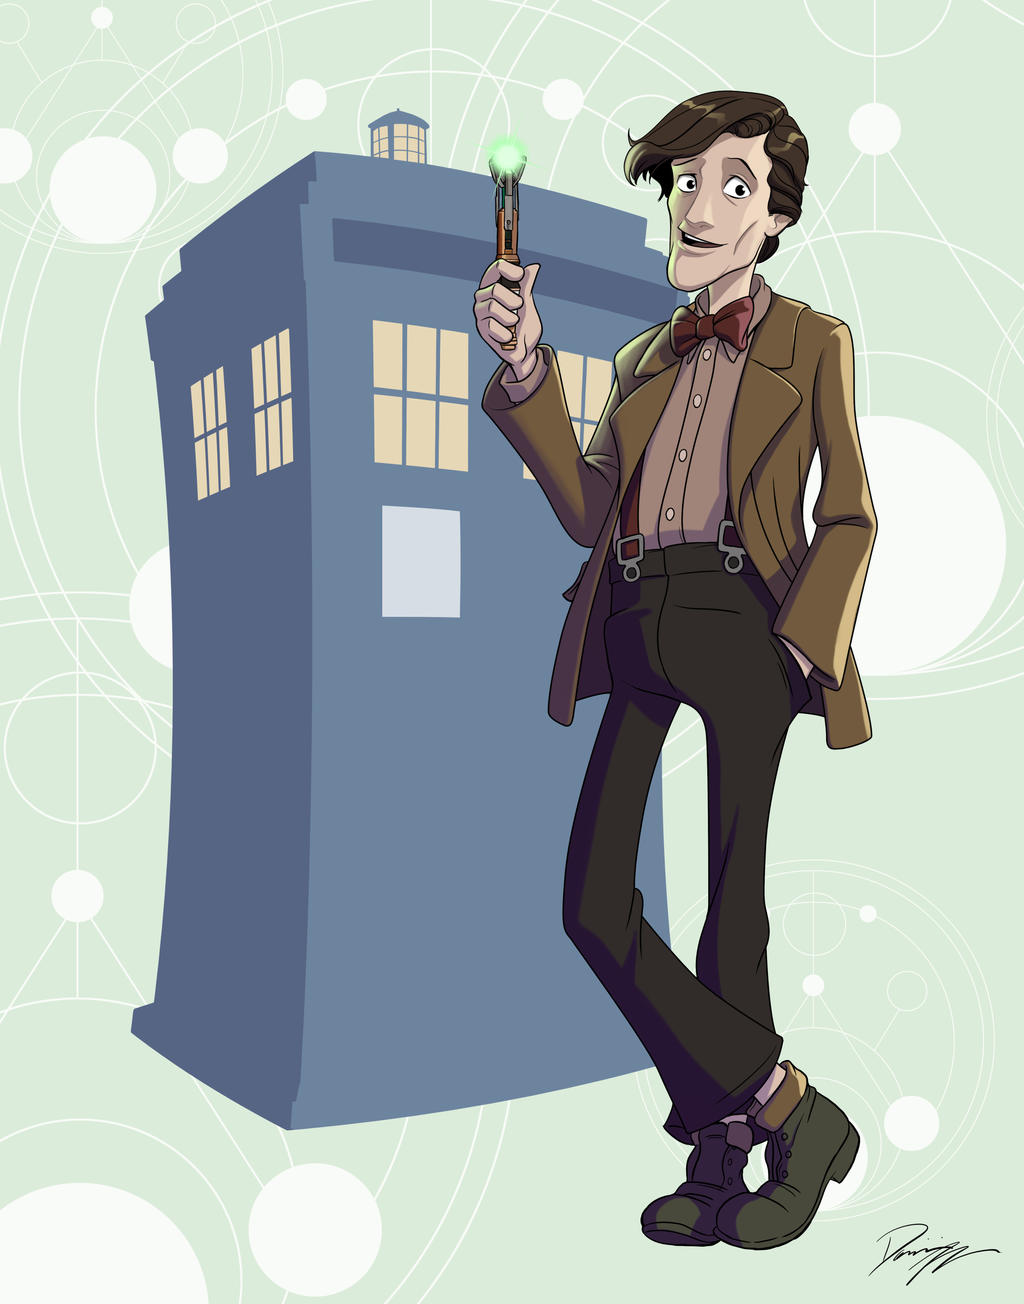 11Doctor by Dominic-Marco